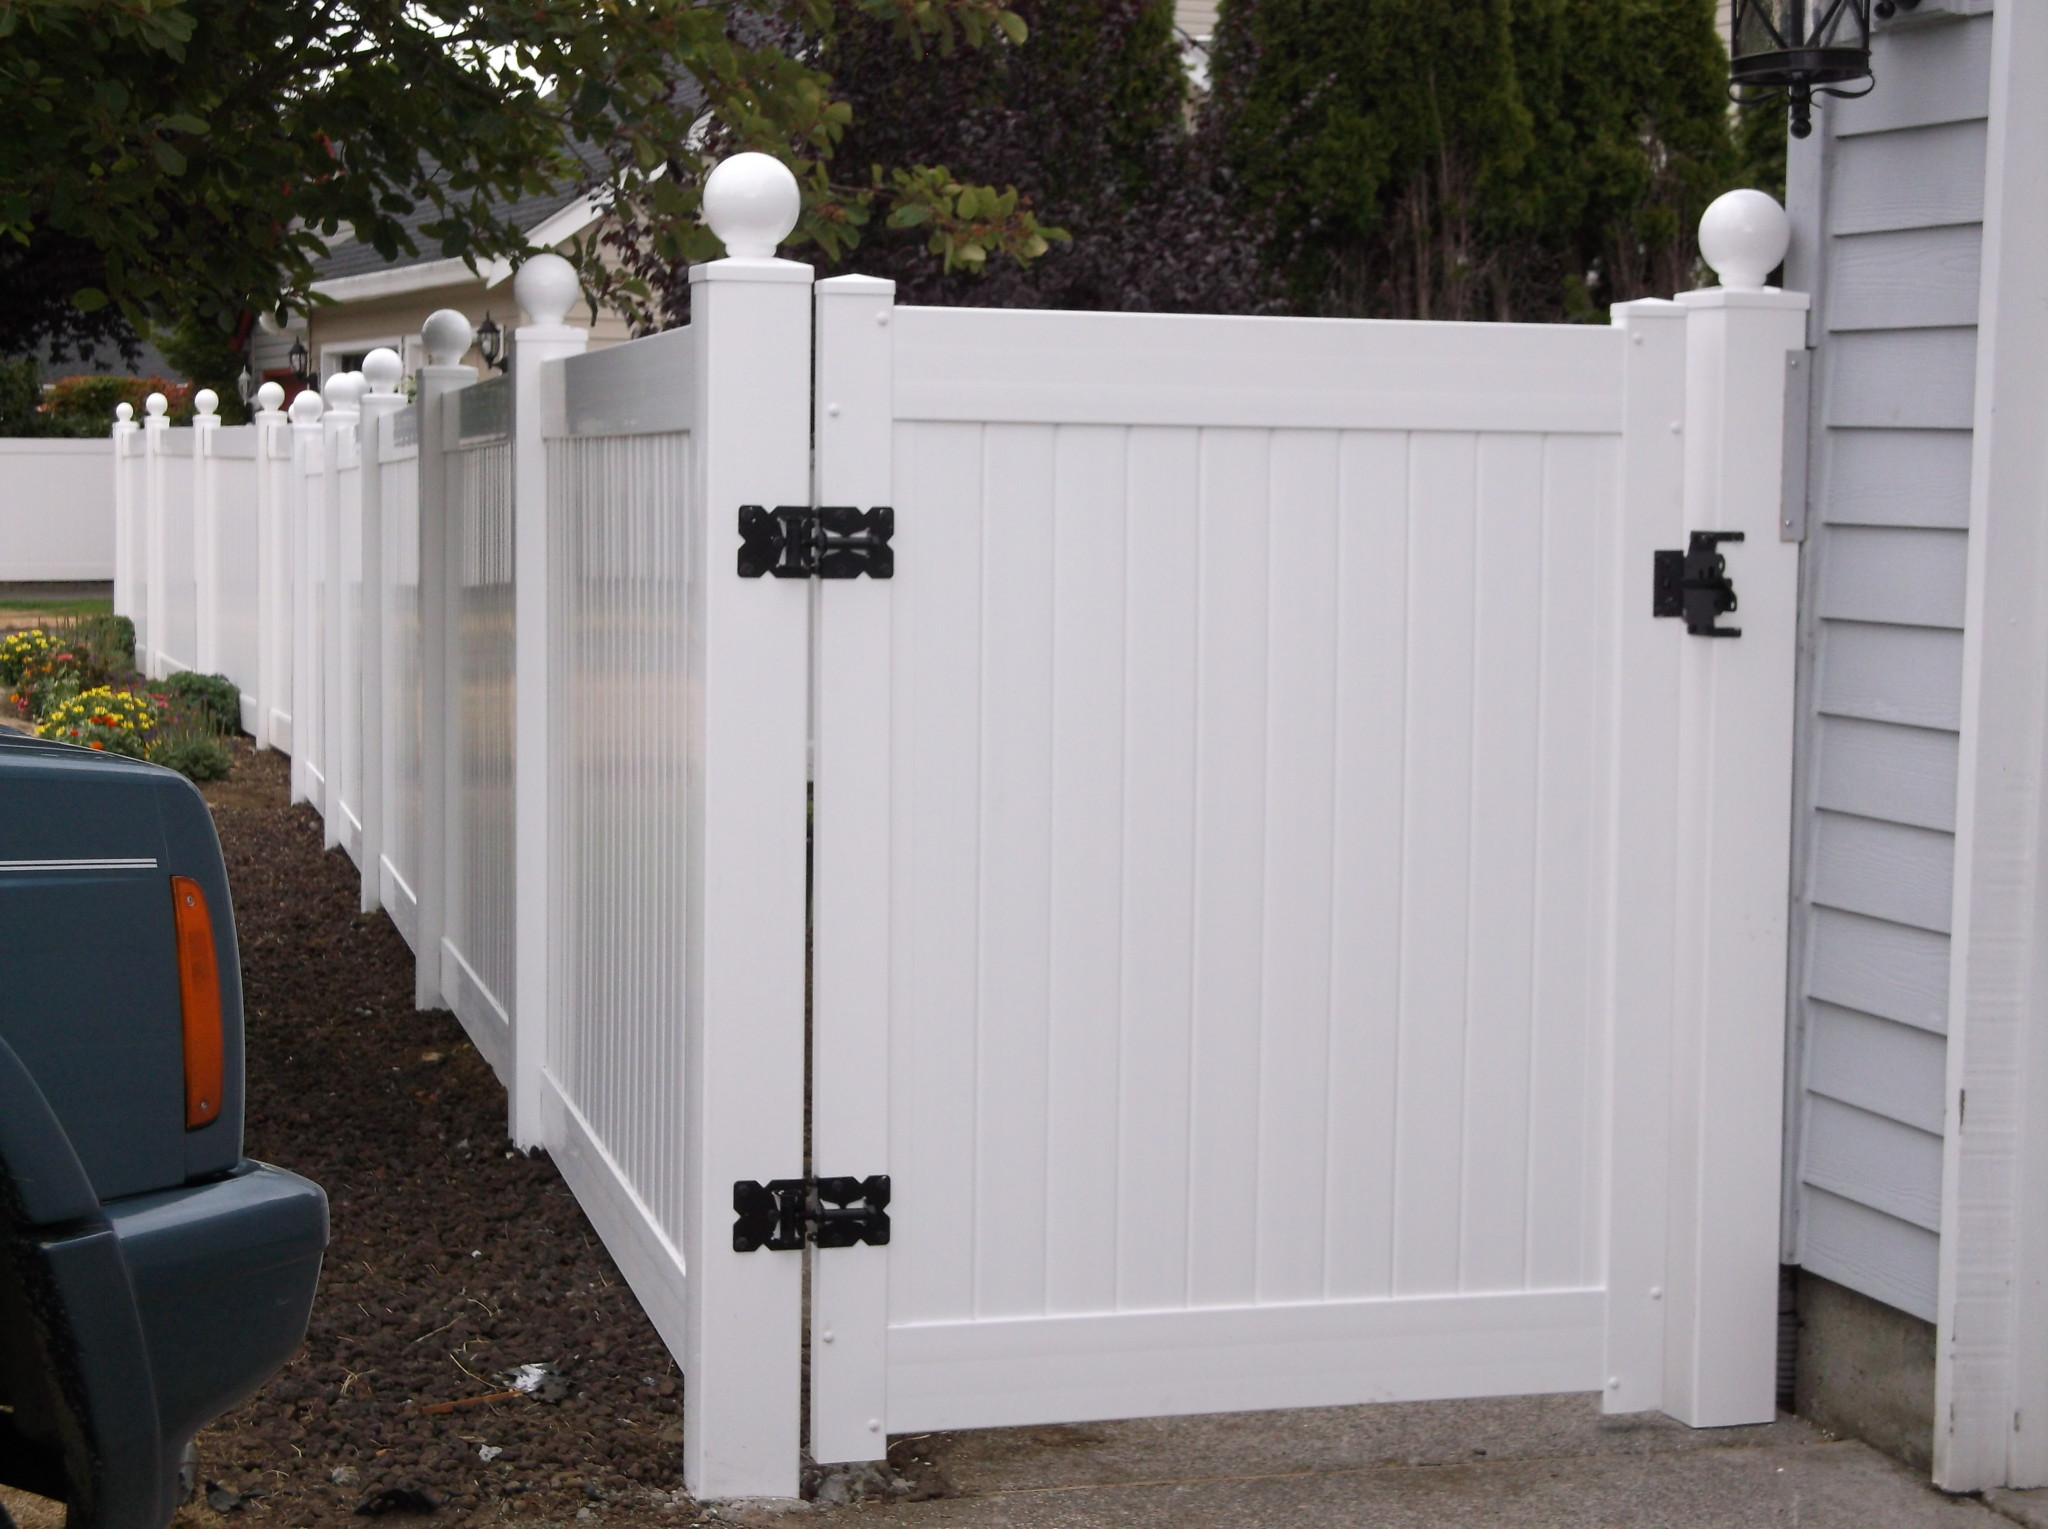 White Vinyl Fence Custom gates available, custom tops optional. Contact Vancouver Washington's Best Fence Builders. The Fenceman Fence Company installs wood, vinyl, chain link and ornamental iron fences. We also offer materials for the do it yourselfer.